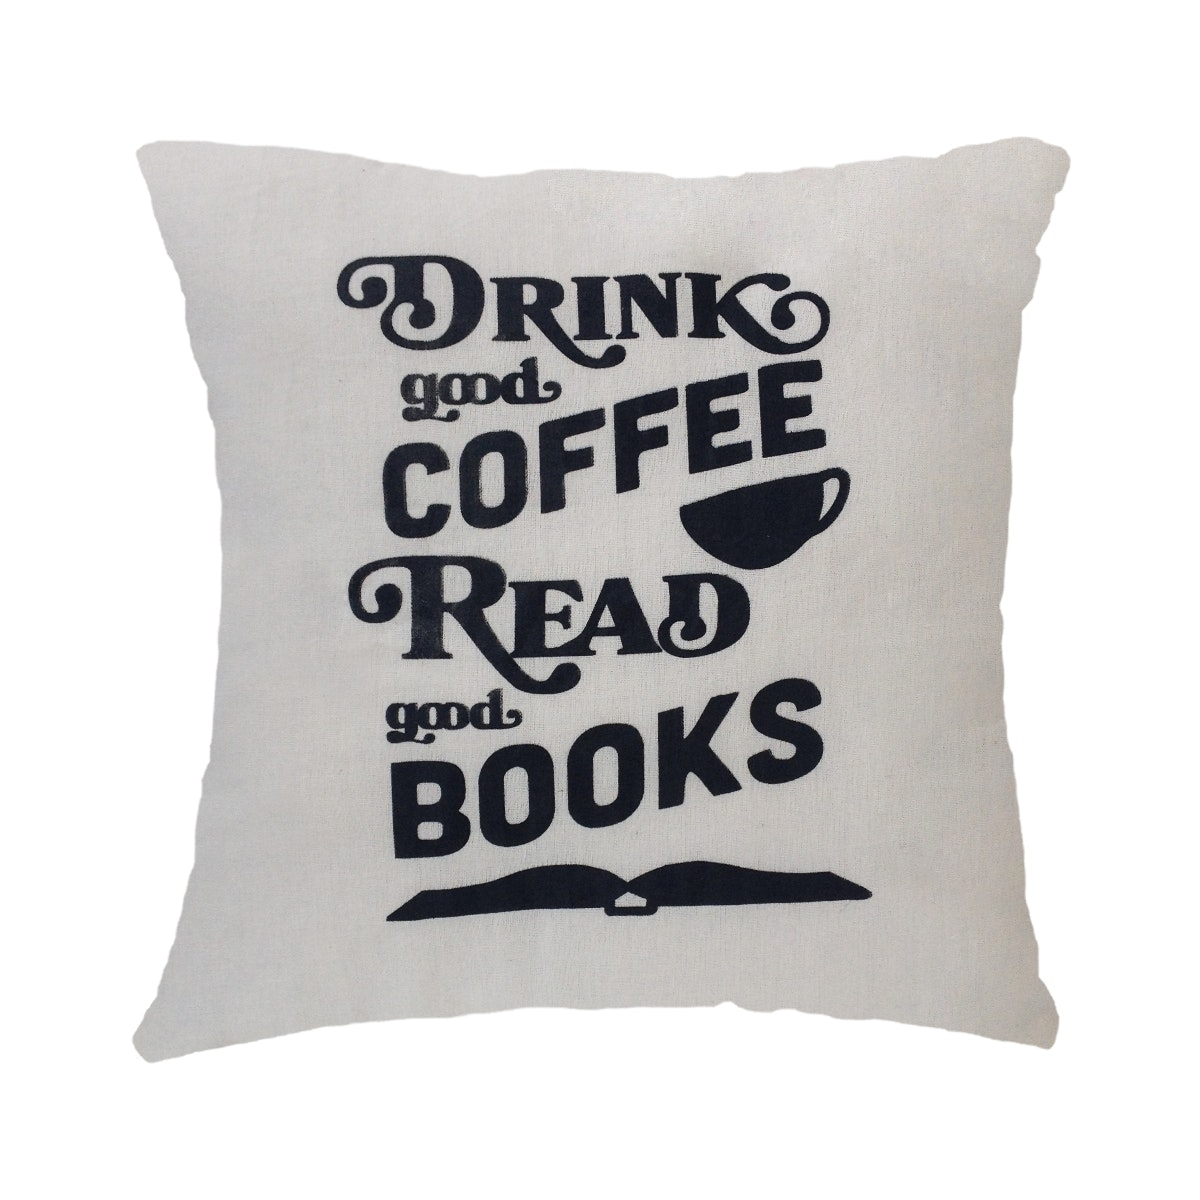 Stiletto In Style Cushion Cover Drink Good Coffee, Read Good Books 40 X 40Cm